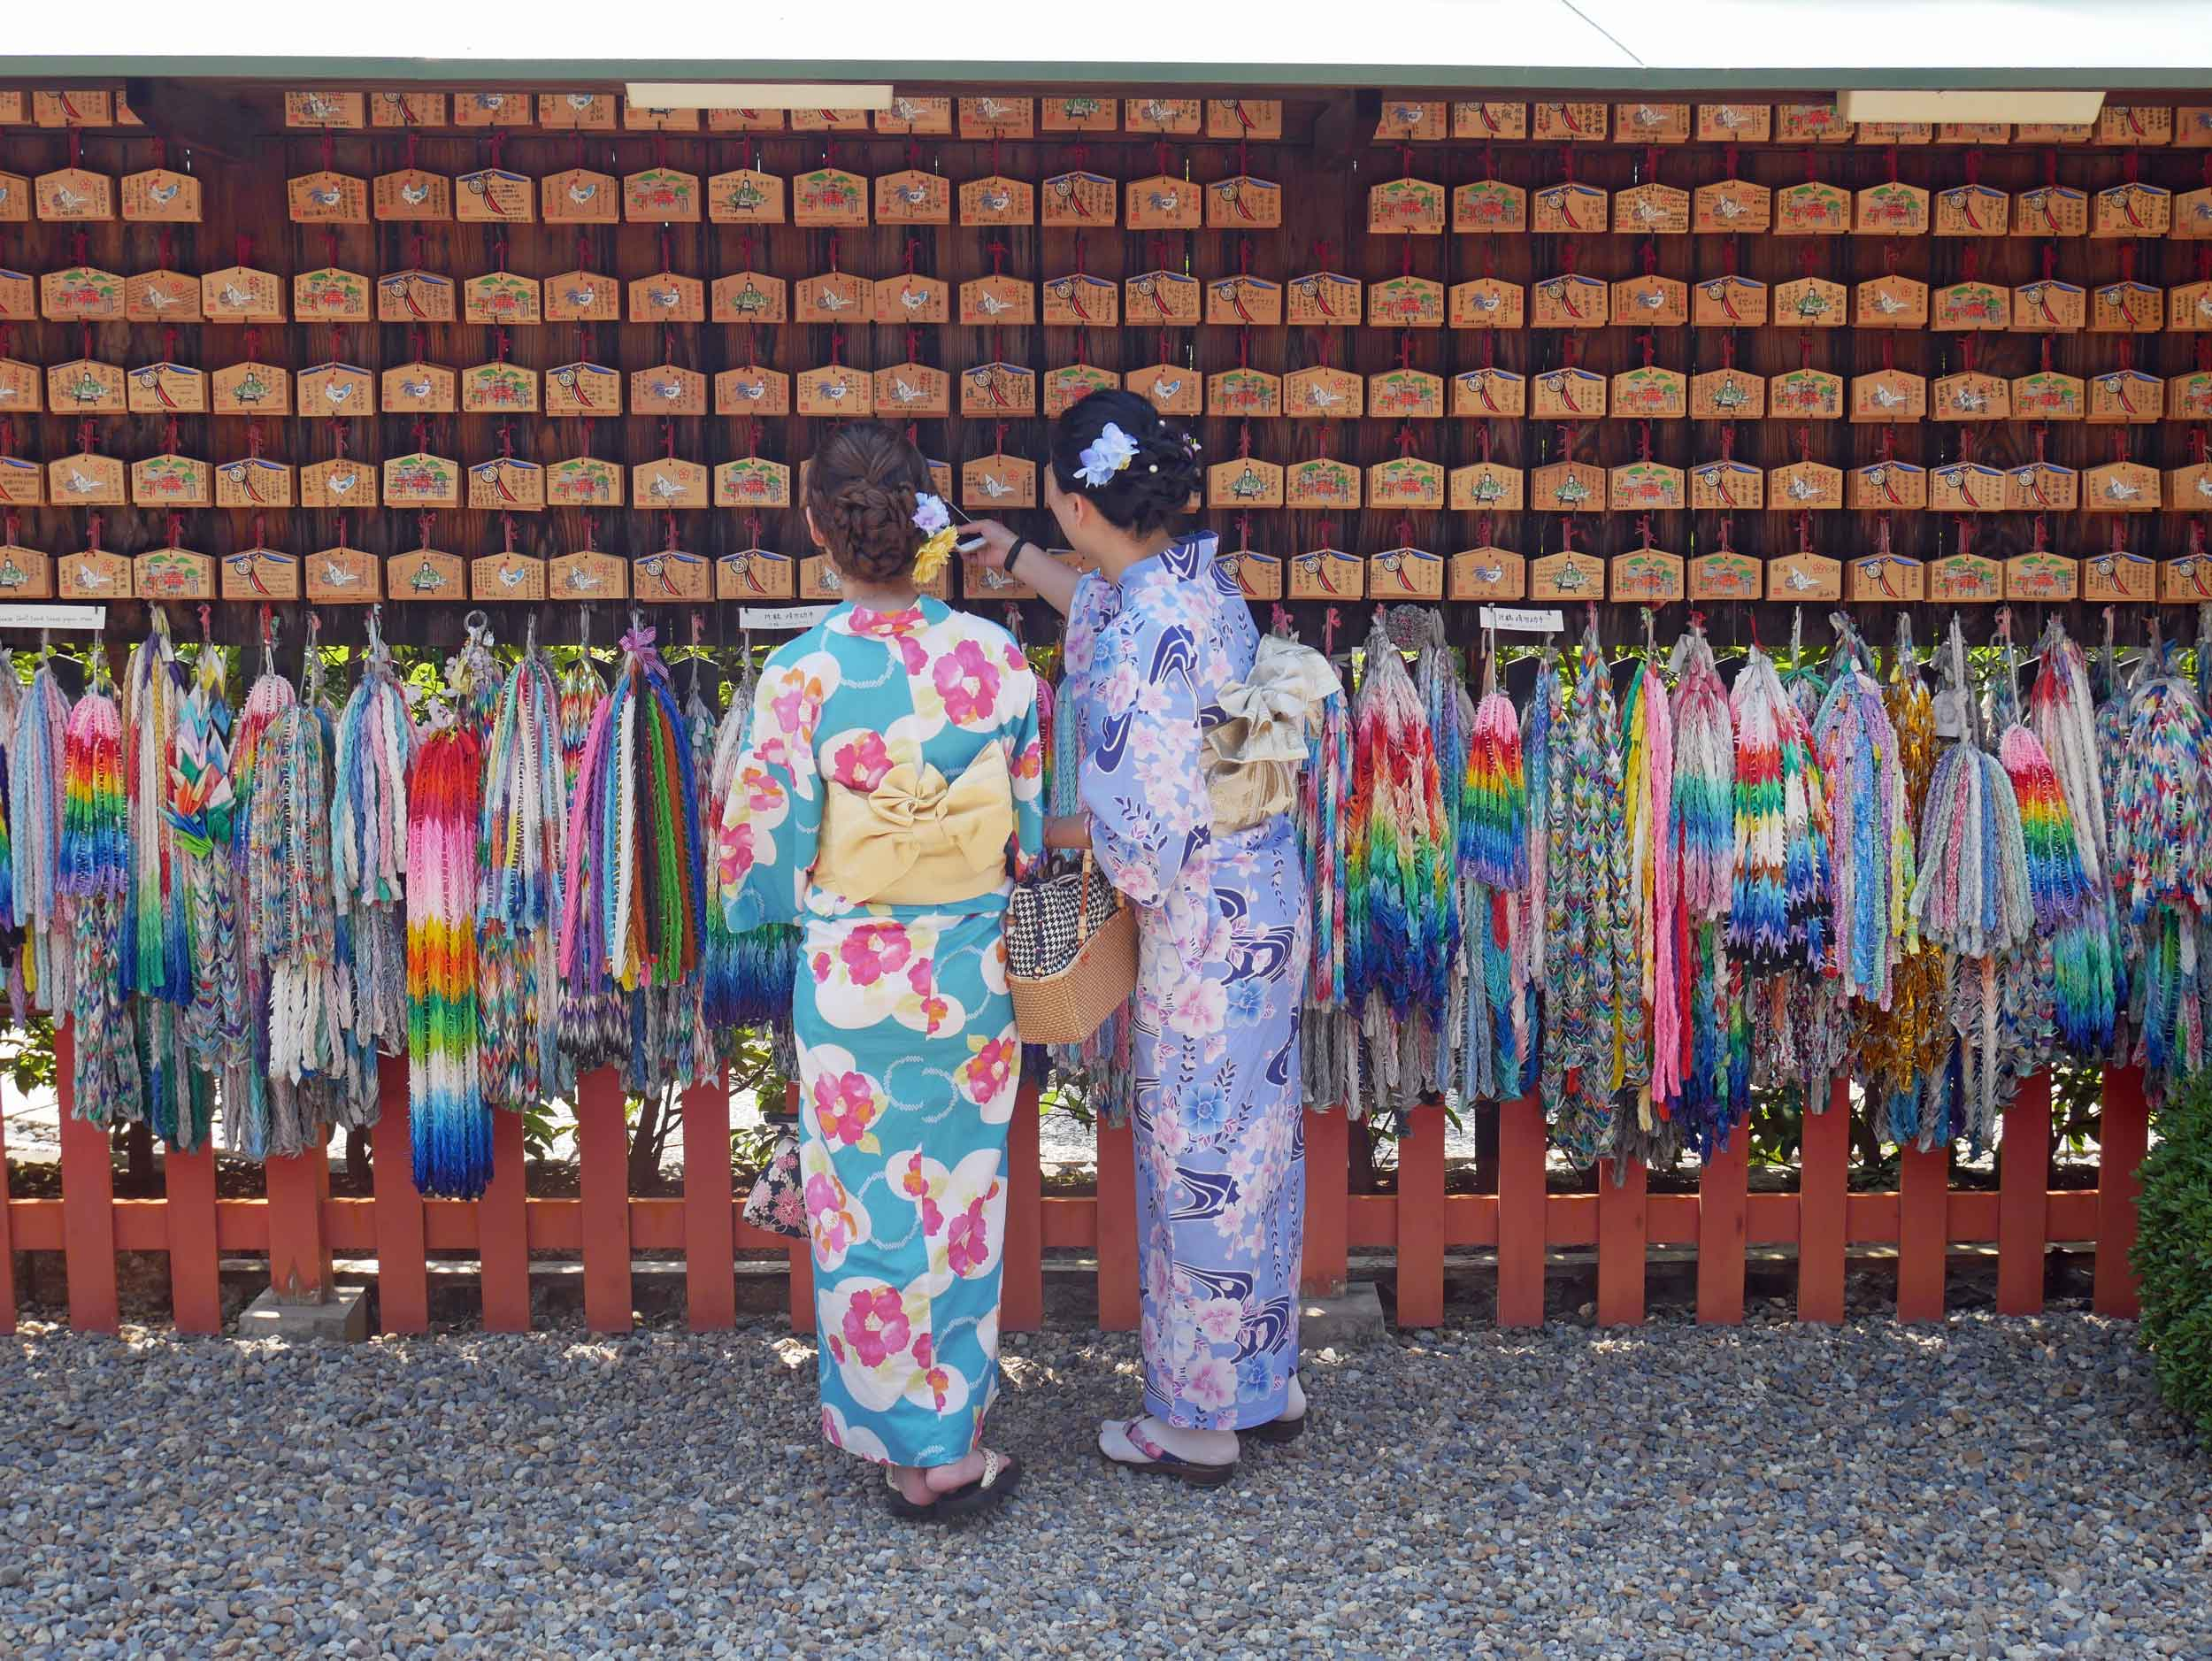 Many visitors were dressed in national costume as they took photos and made offerings around the complex.